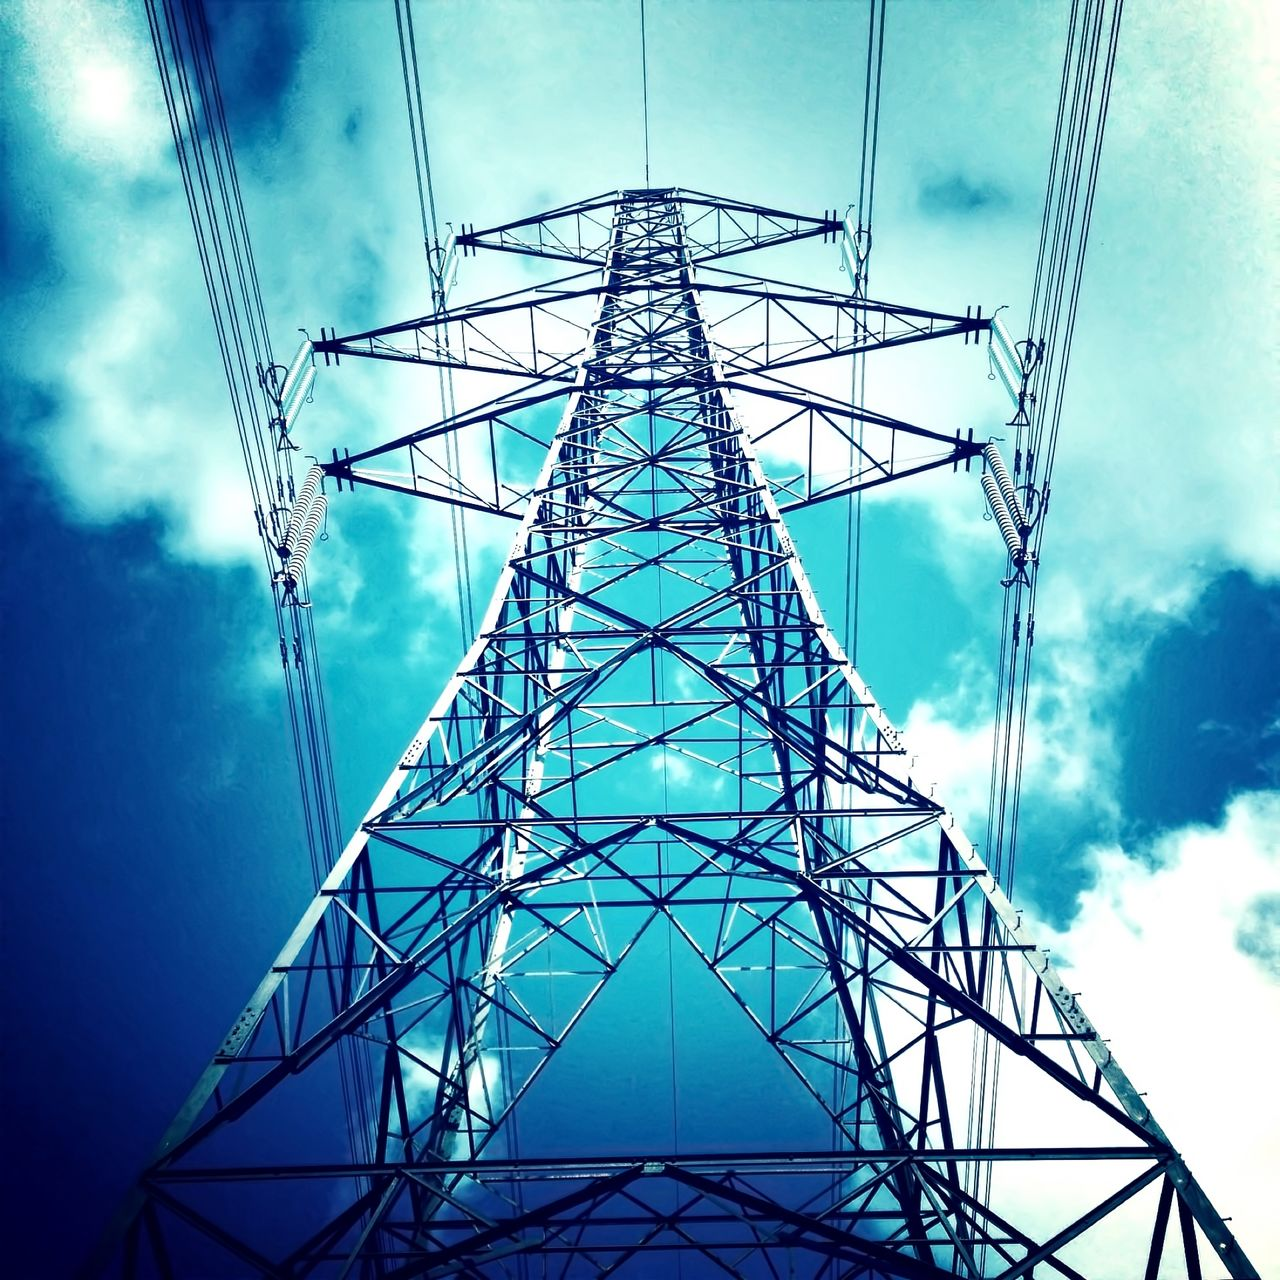 electricity pylon, cable, cloud - sky, sky, electricity, power supply, fuel and power generation, connection, low angle view, no people, technology, day, global communications, symmetry, girder, outdoors